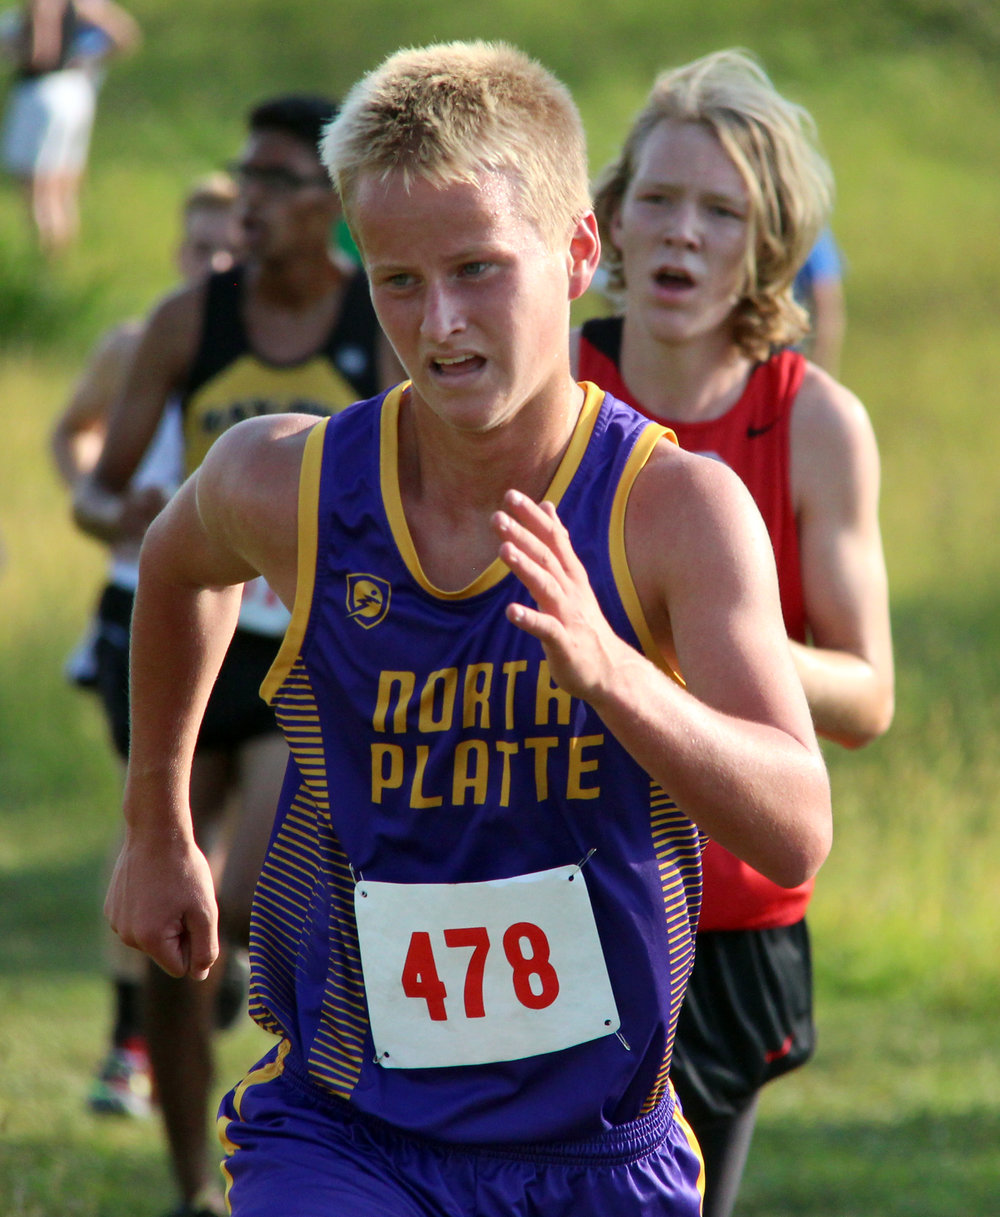 ROSS MARTIN/Citizen photo North Platte junior Tyler Meadows approaches the final turn on the course at Platte Ridge Park during the Platte County Invitational on Thursday, Sept. 14.